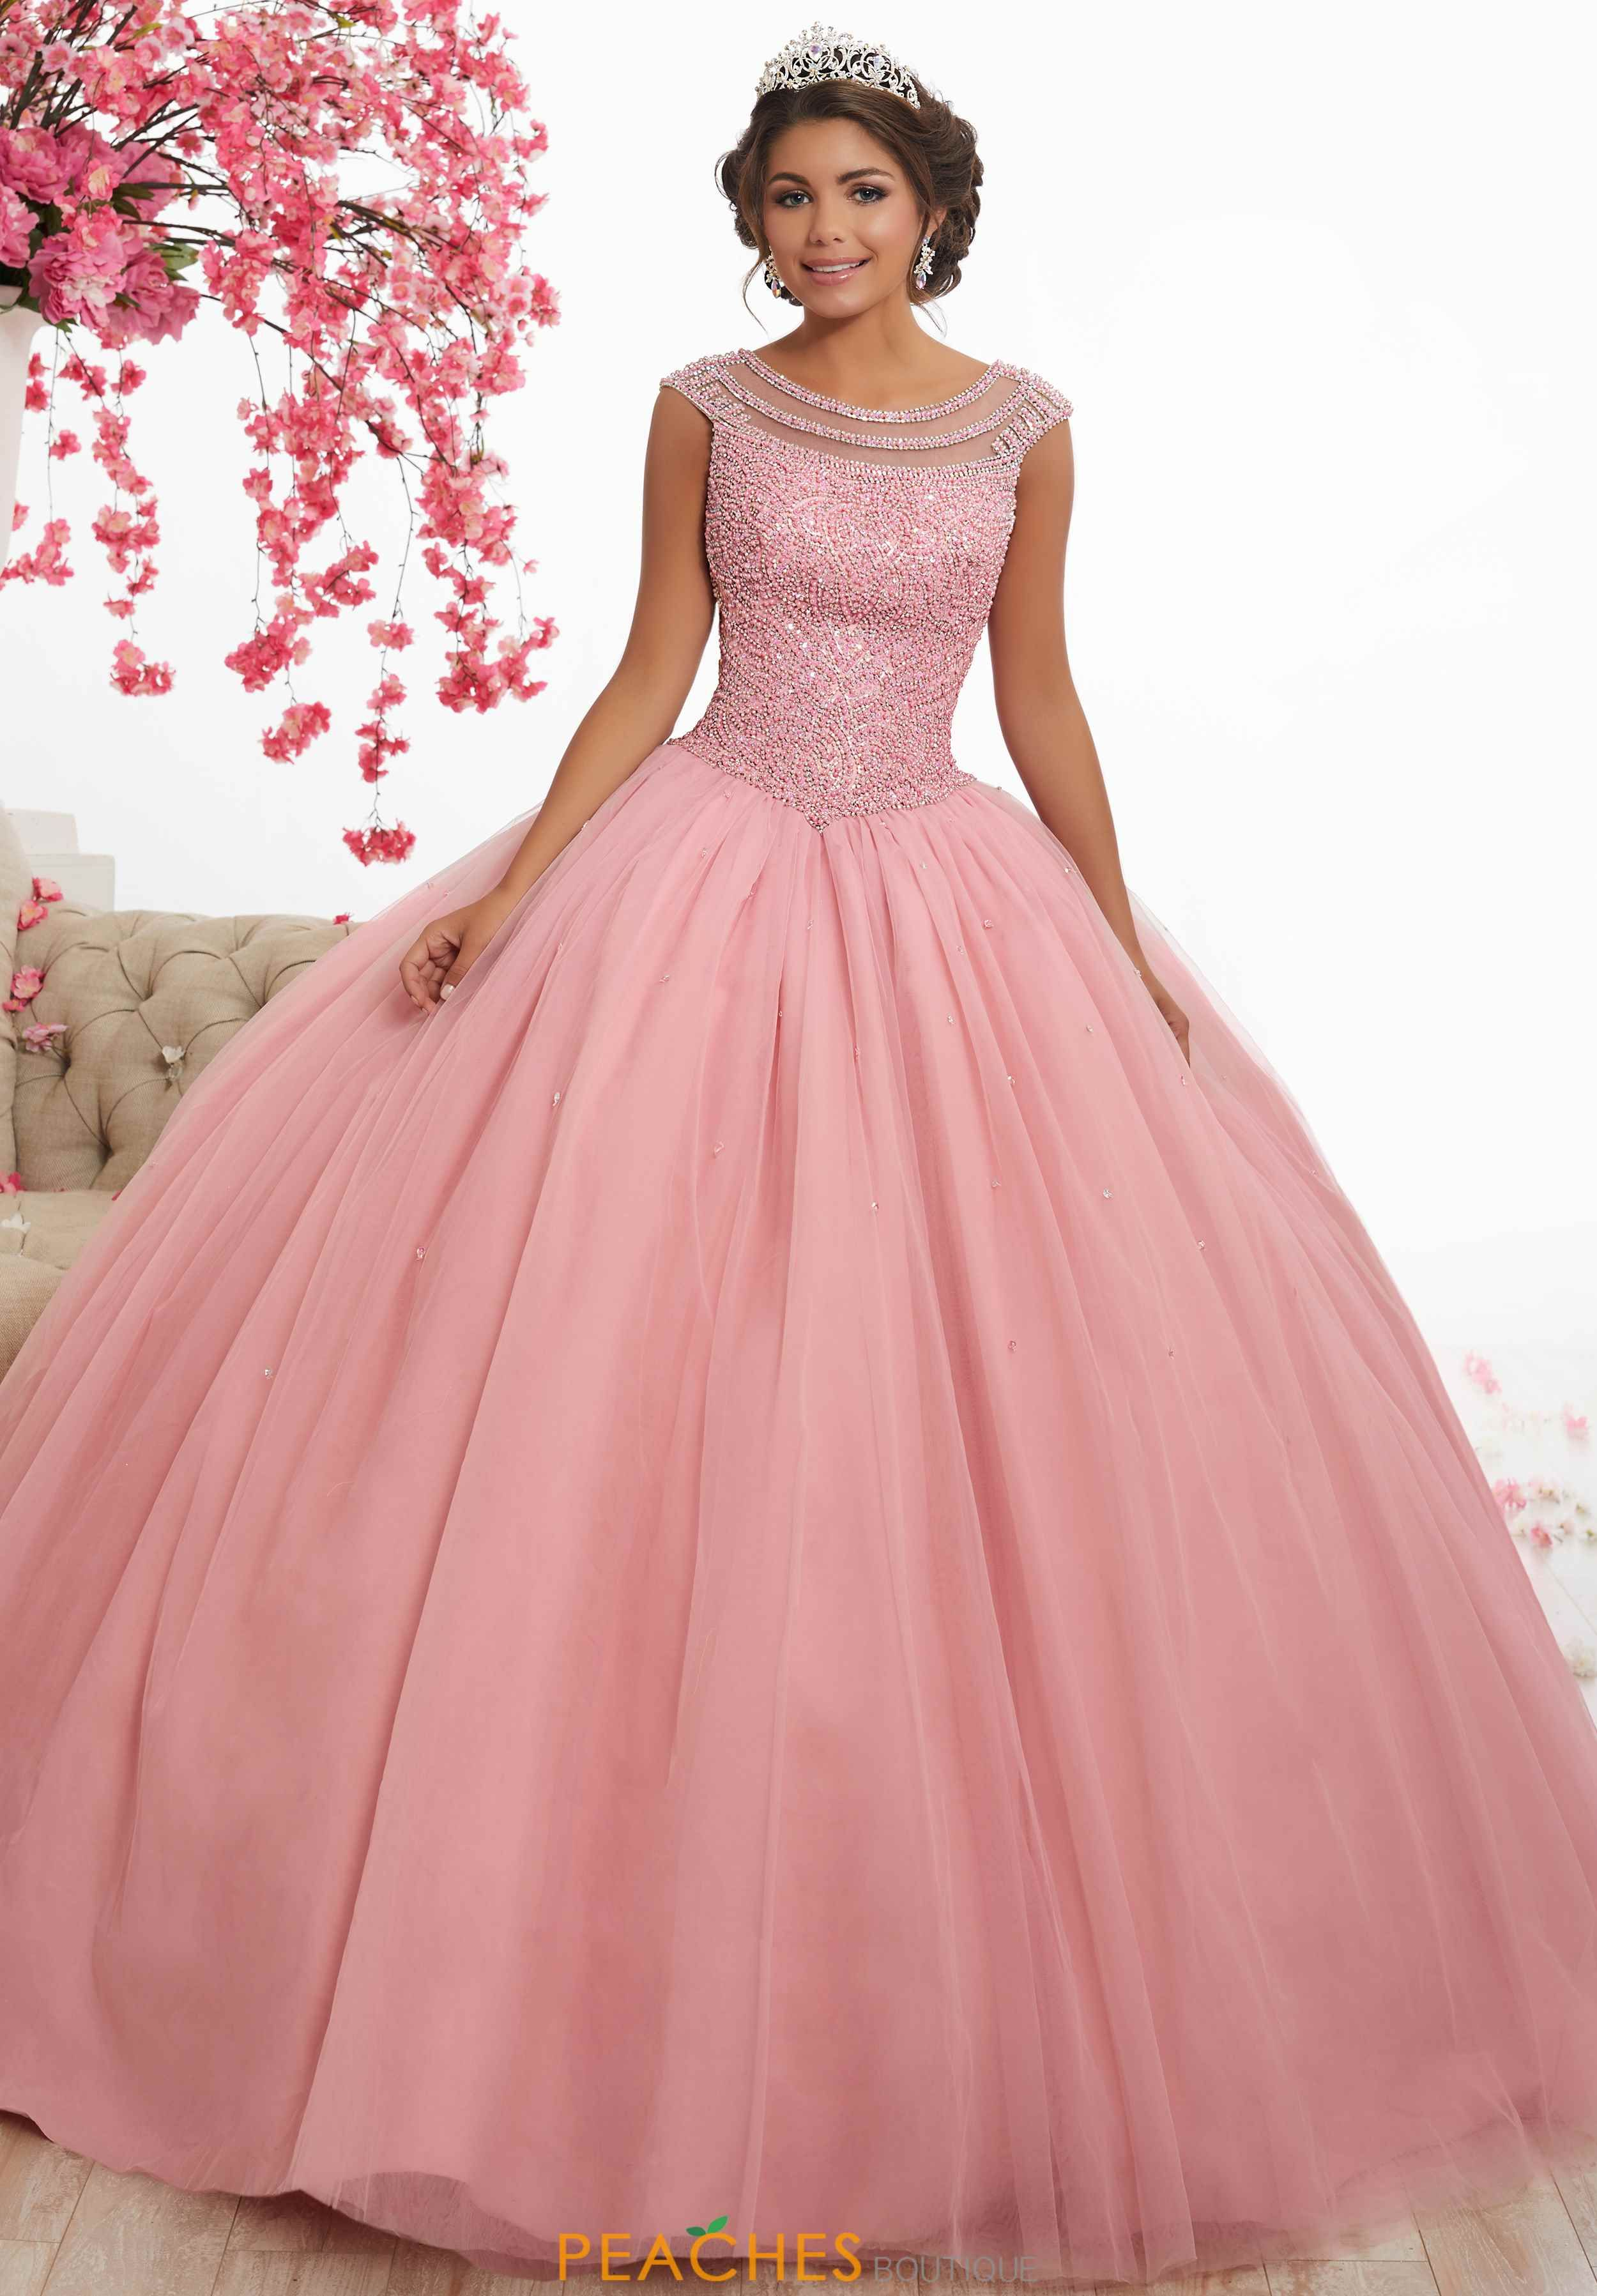 106492ed378 Tiffany Quinceanera Beaded Cap Sleeve Ball Gown 56340 in 2019